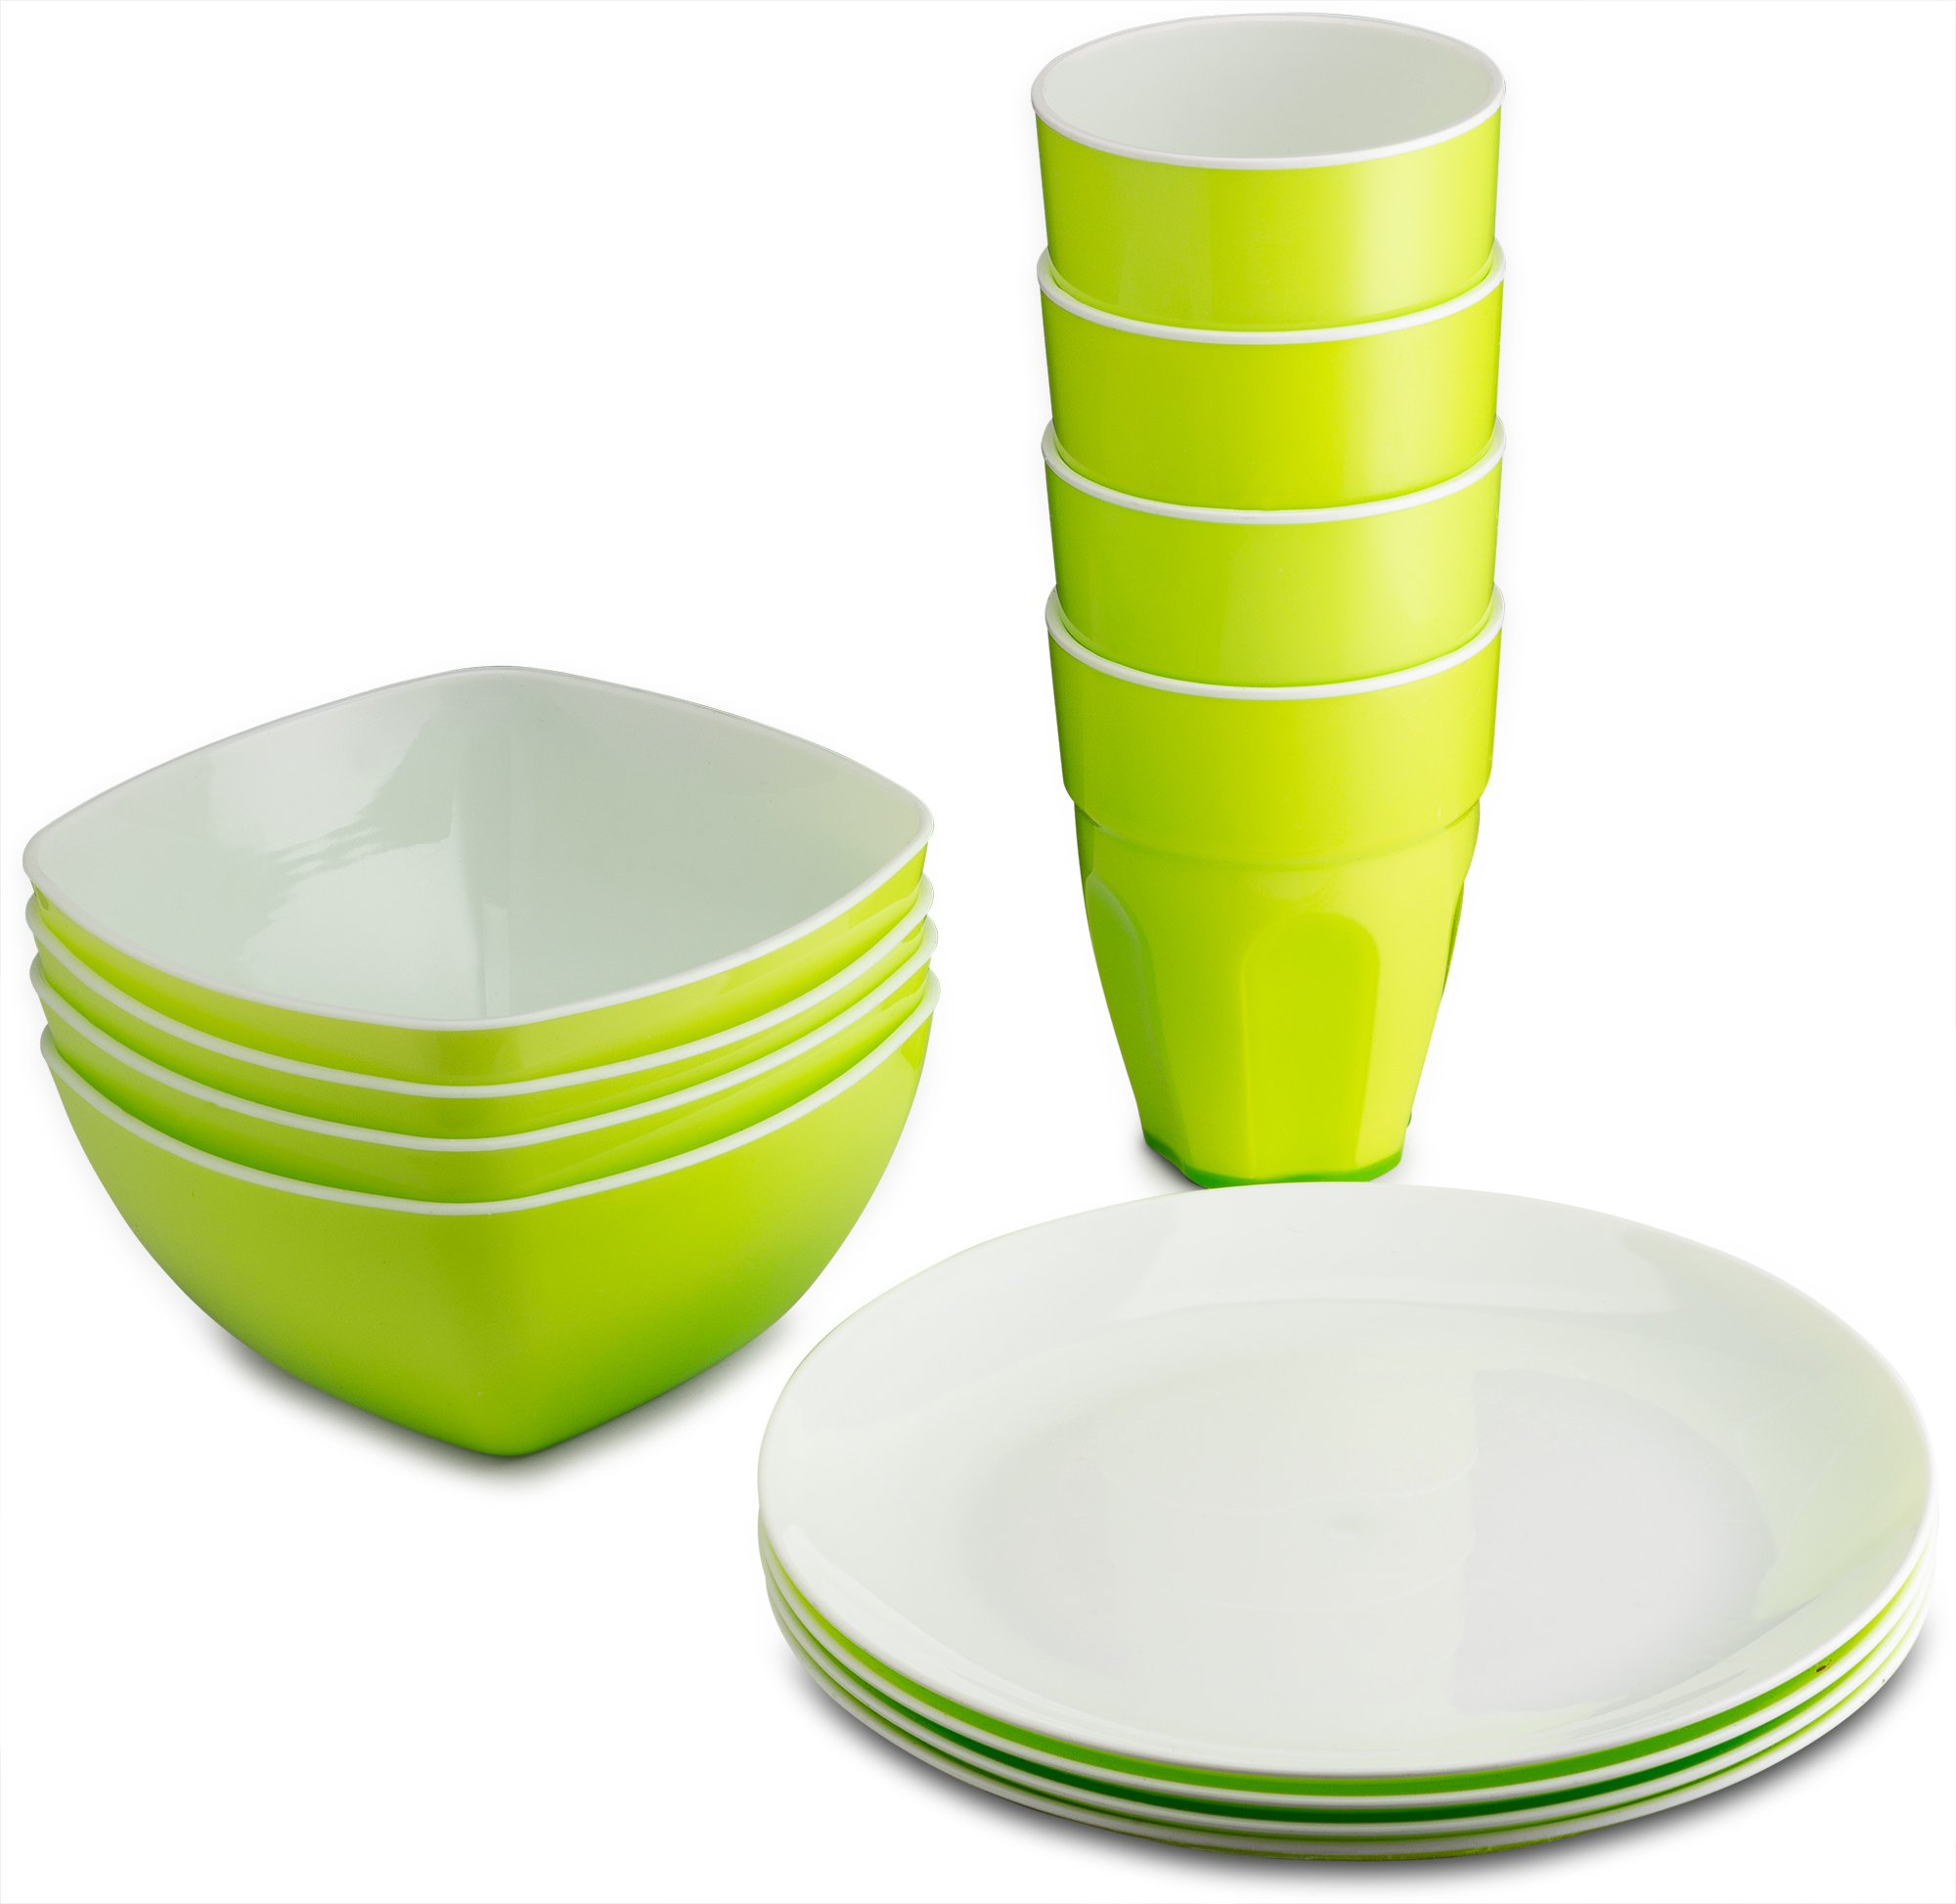 PLASTI HOME Reusable Plastic Dinnerware Set (12pcs) – Fancy Hard Plastic Plates, Bows & Cups In Green Festive Color – Microwaveable & Dishwasher Safe Flatware & Tumblers For Daily Use